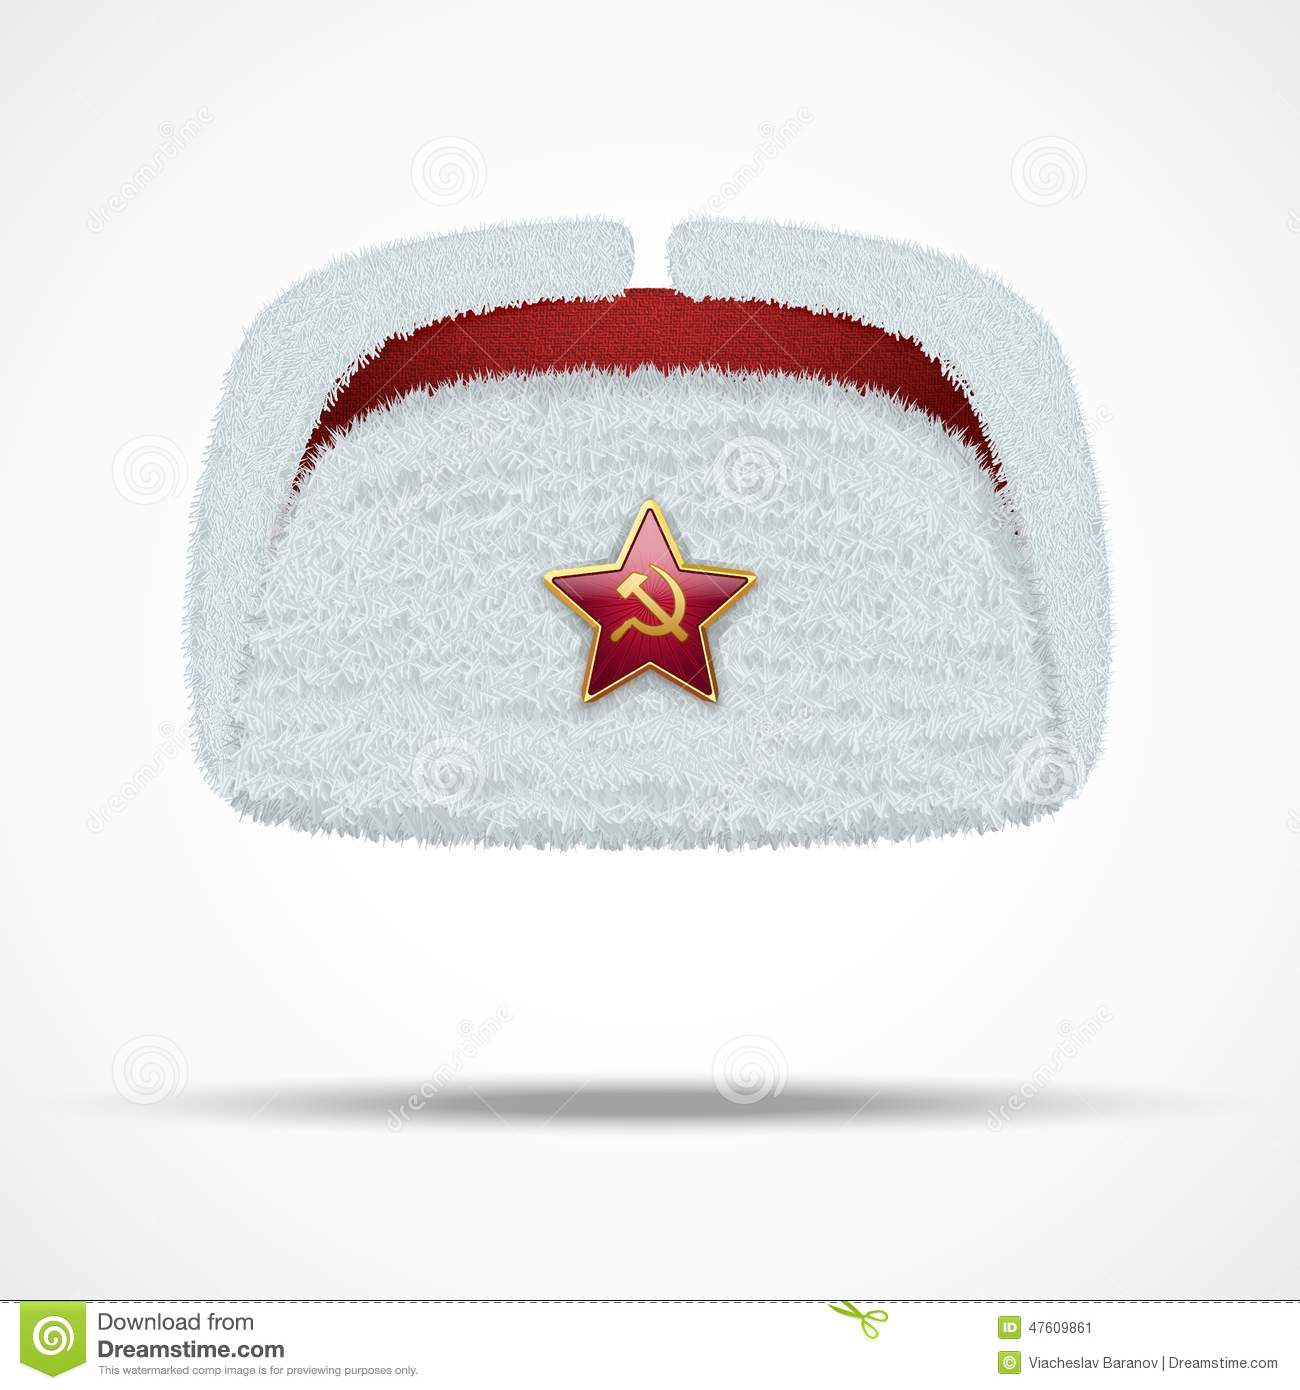 8a02b21308ba7 Russian white fur winter hat ushanka with red star. Vector illustration  isolated on white background.